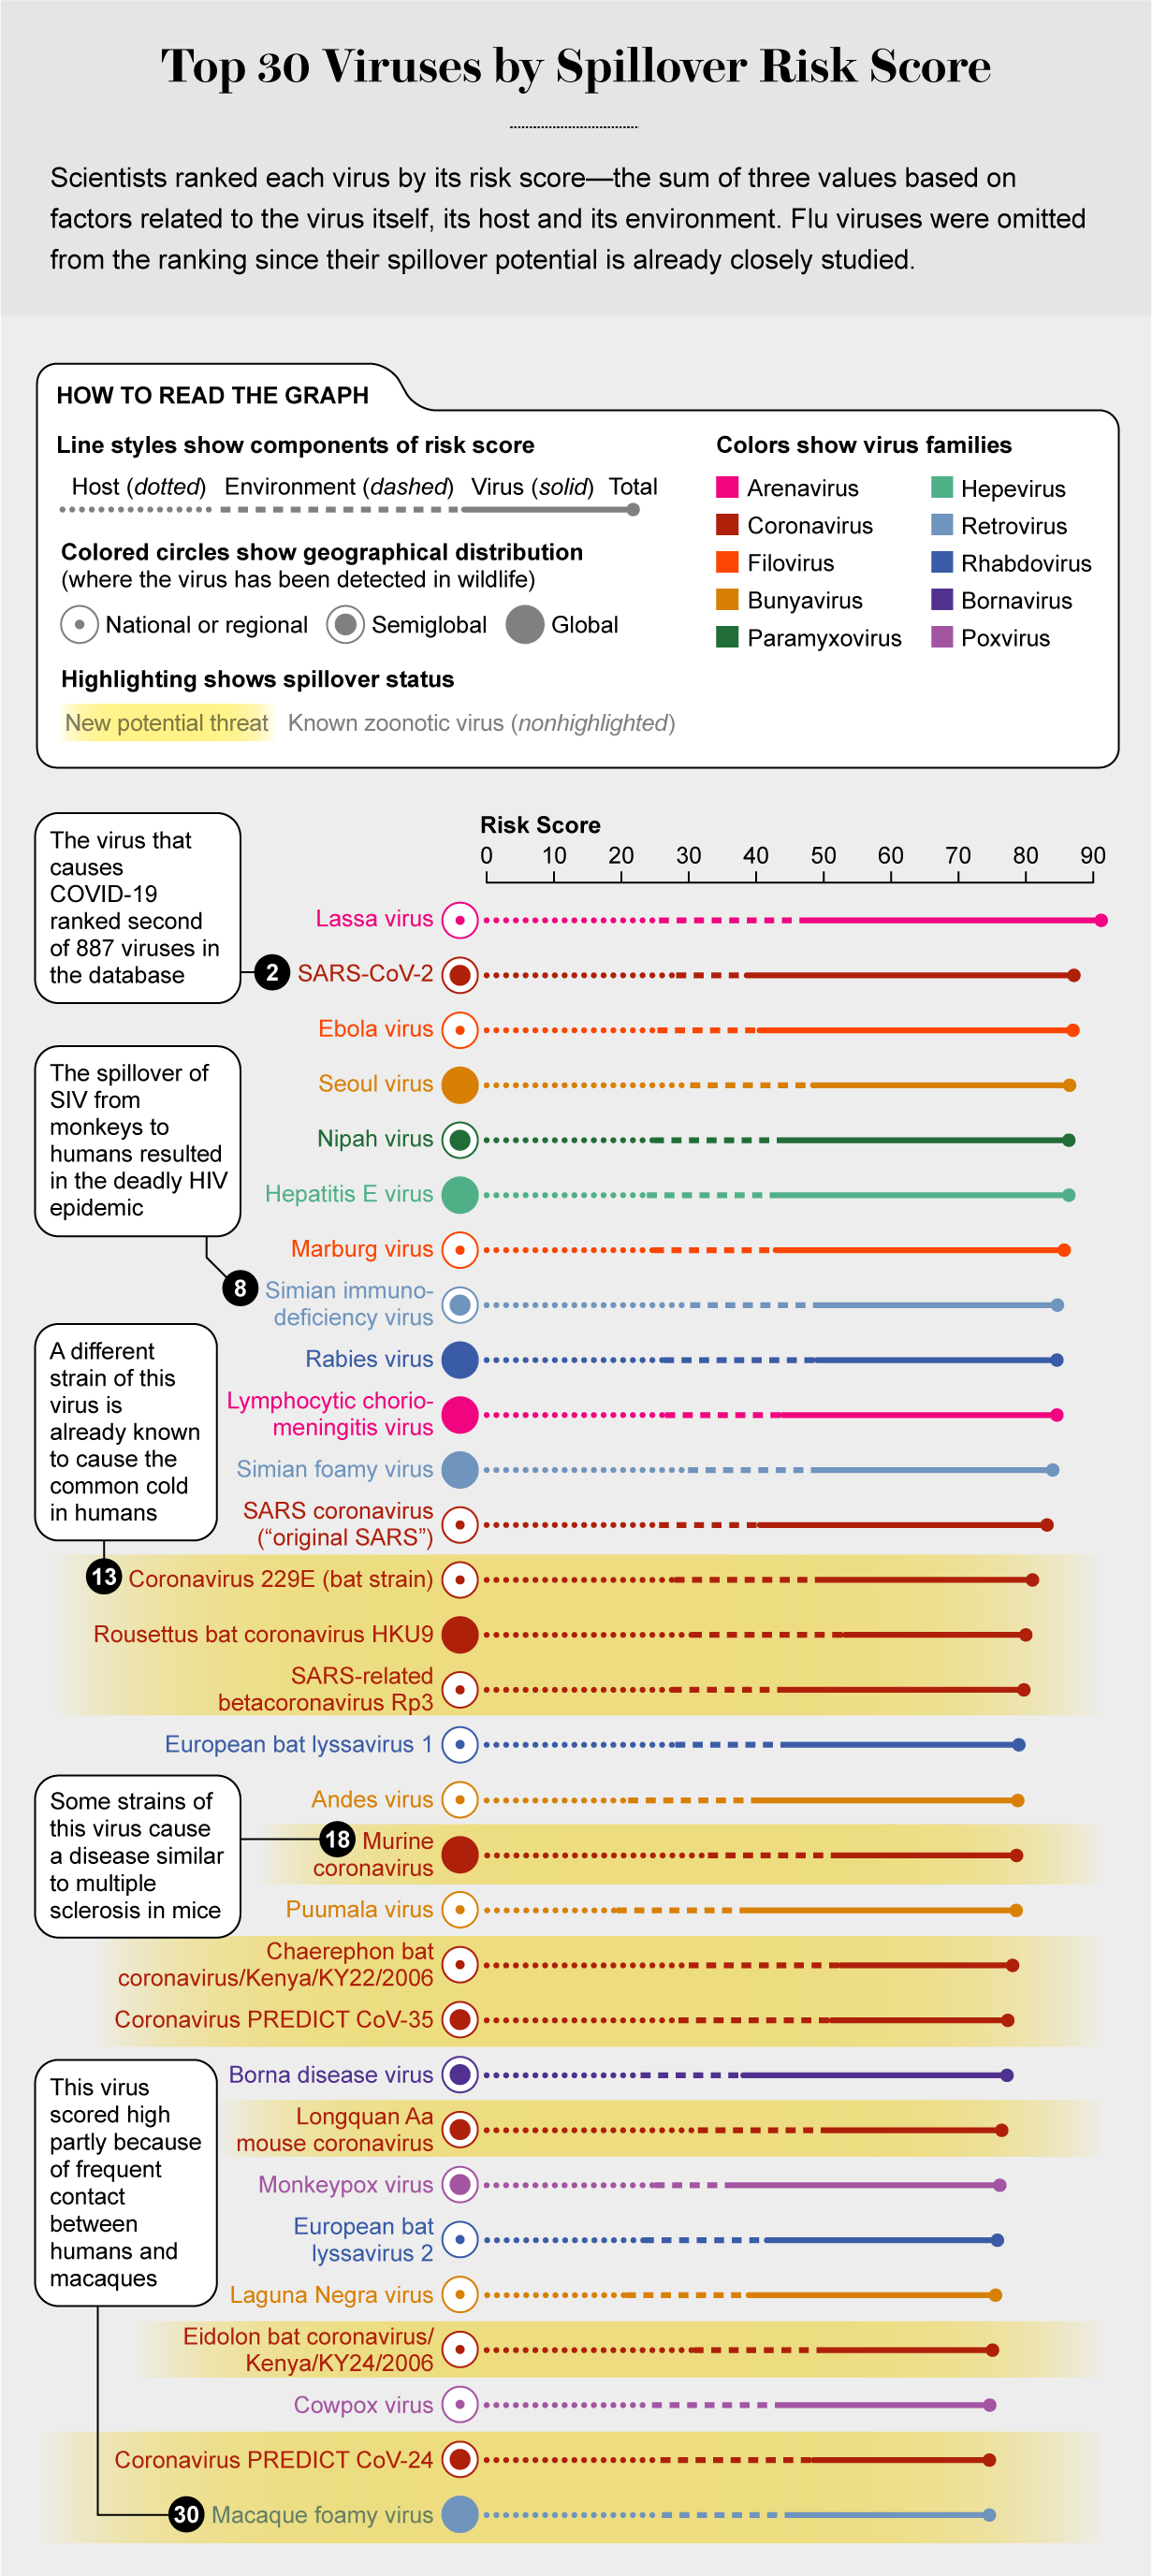 Chart shows risk scores for top 30 highest-ranked viruses based on their risk of spilling over from animals to humans.